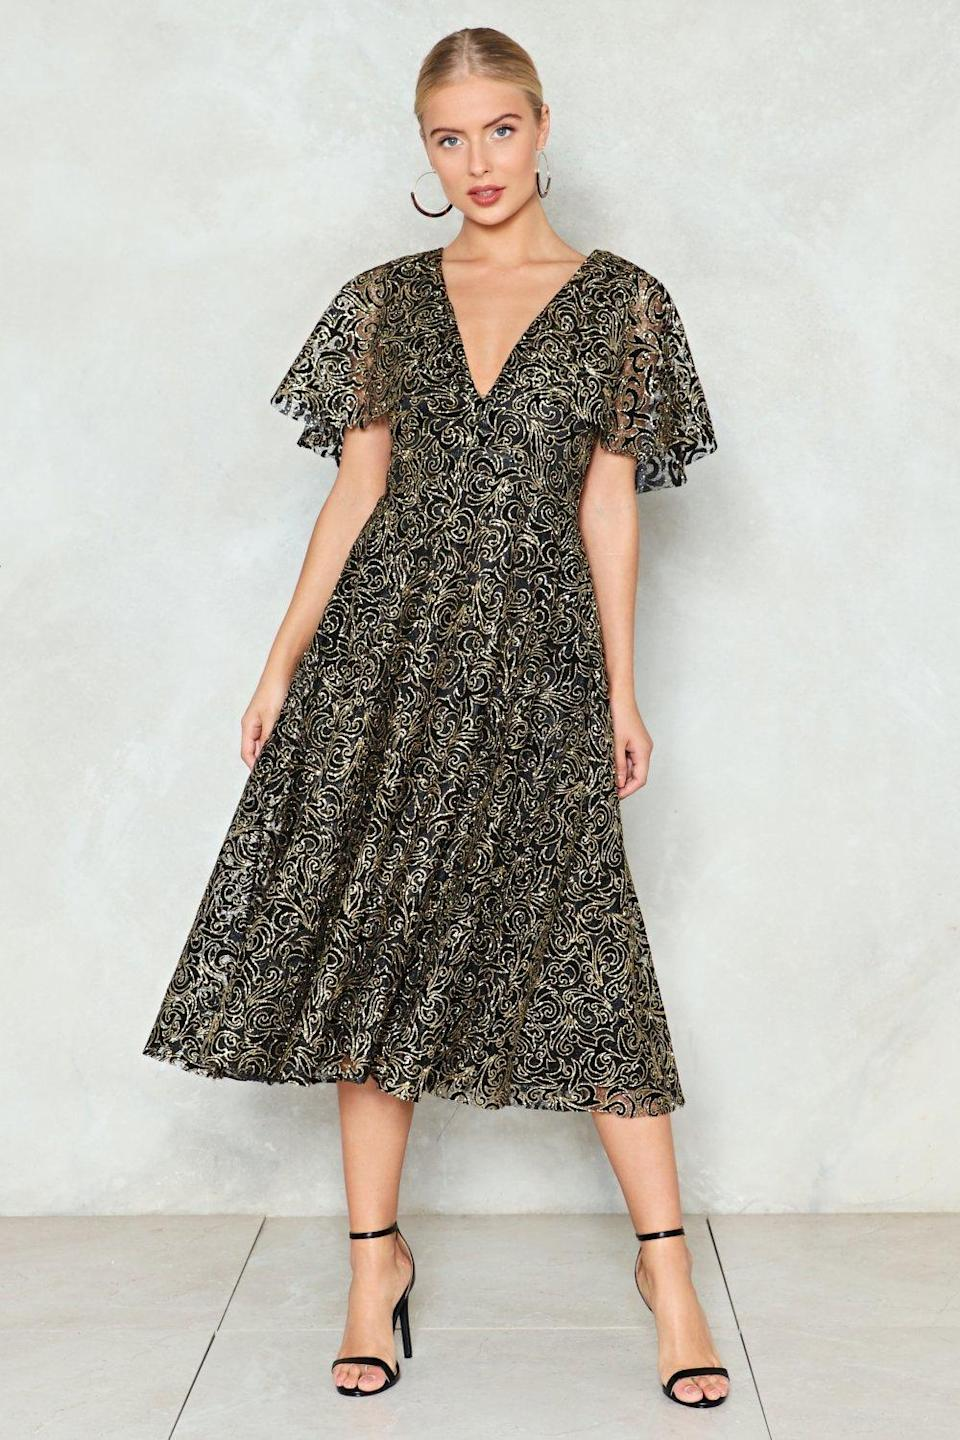 """<p>$66, Nasty Gal</p><p><a rel=""""nofollow noopener"""" href=""""http://www.nastygal.com/cape-going-glitter-dress/AGG94297.html"""" target=""""_blank"""" data-ylk=""""slk:Buy Now"""" class=""""link rapid-noclick-resp"""">Buy Now</a><br></p>"""